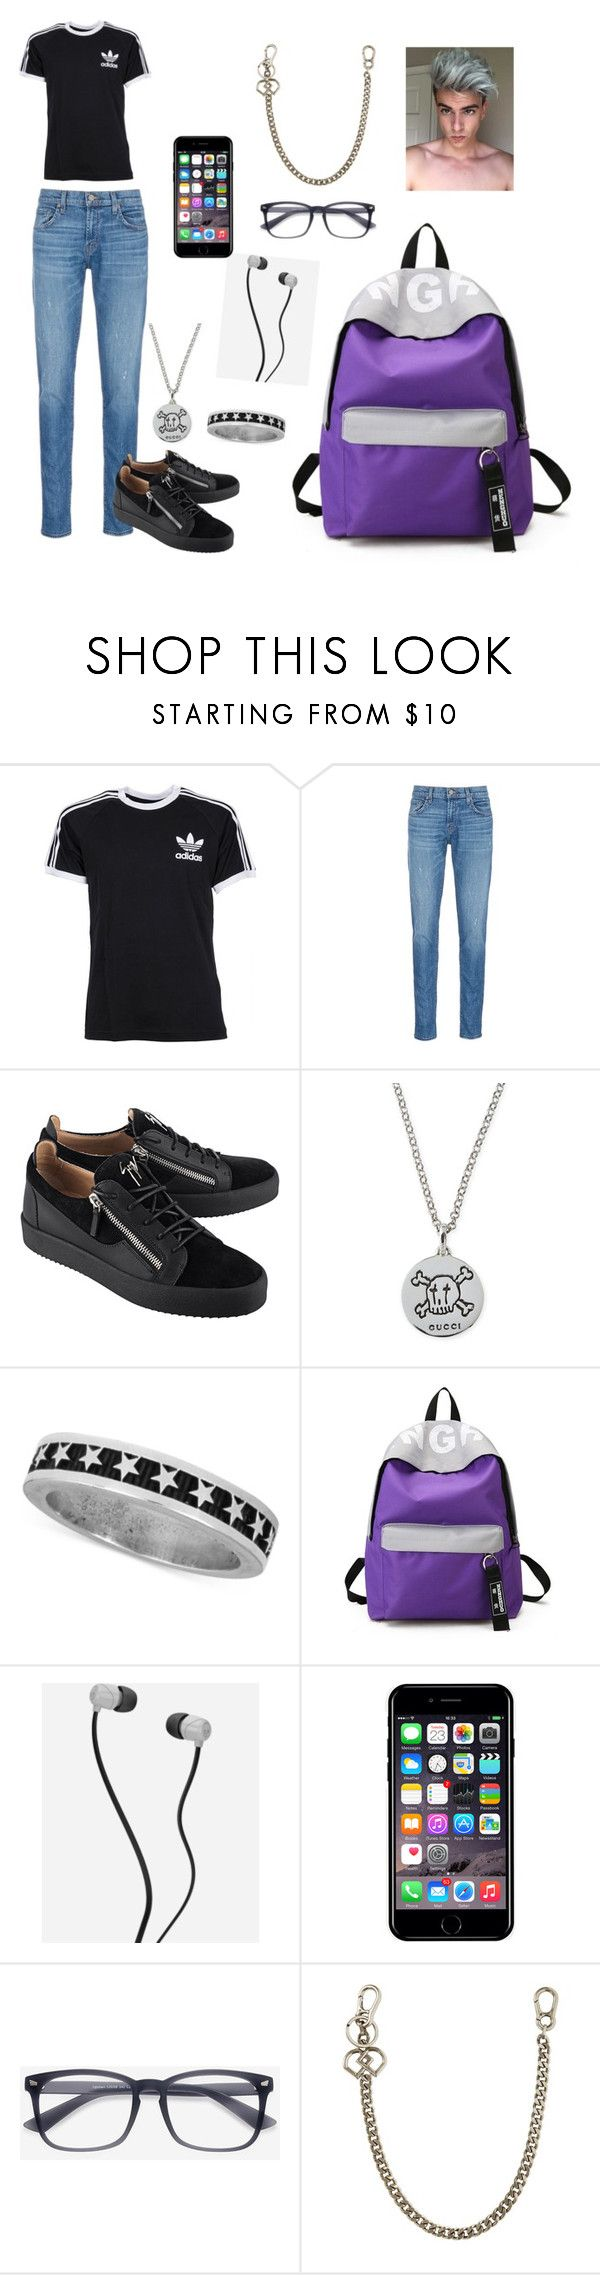 """""""Odision"""" by andri-symeou ❤ liked on Polyvore featuring adidas, J Brand, Giuseppe Zanotti, Gucci, King Baby Studio, Skullcandy, Off-White, EyeBuyDirect.com, Dsquared2 and men's fashion"""